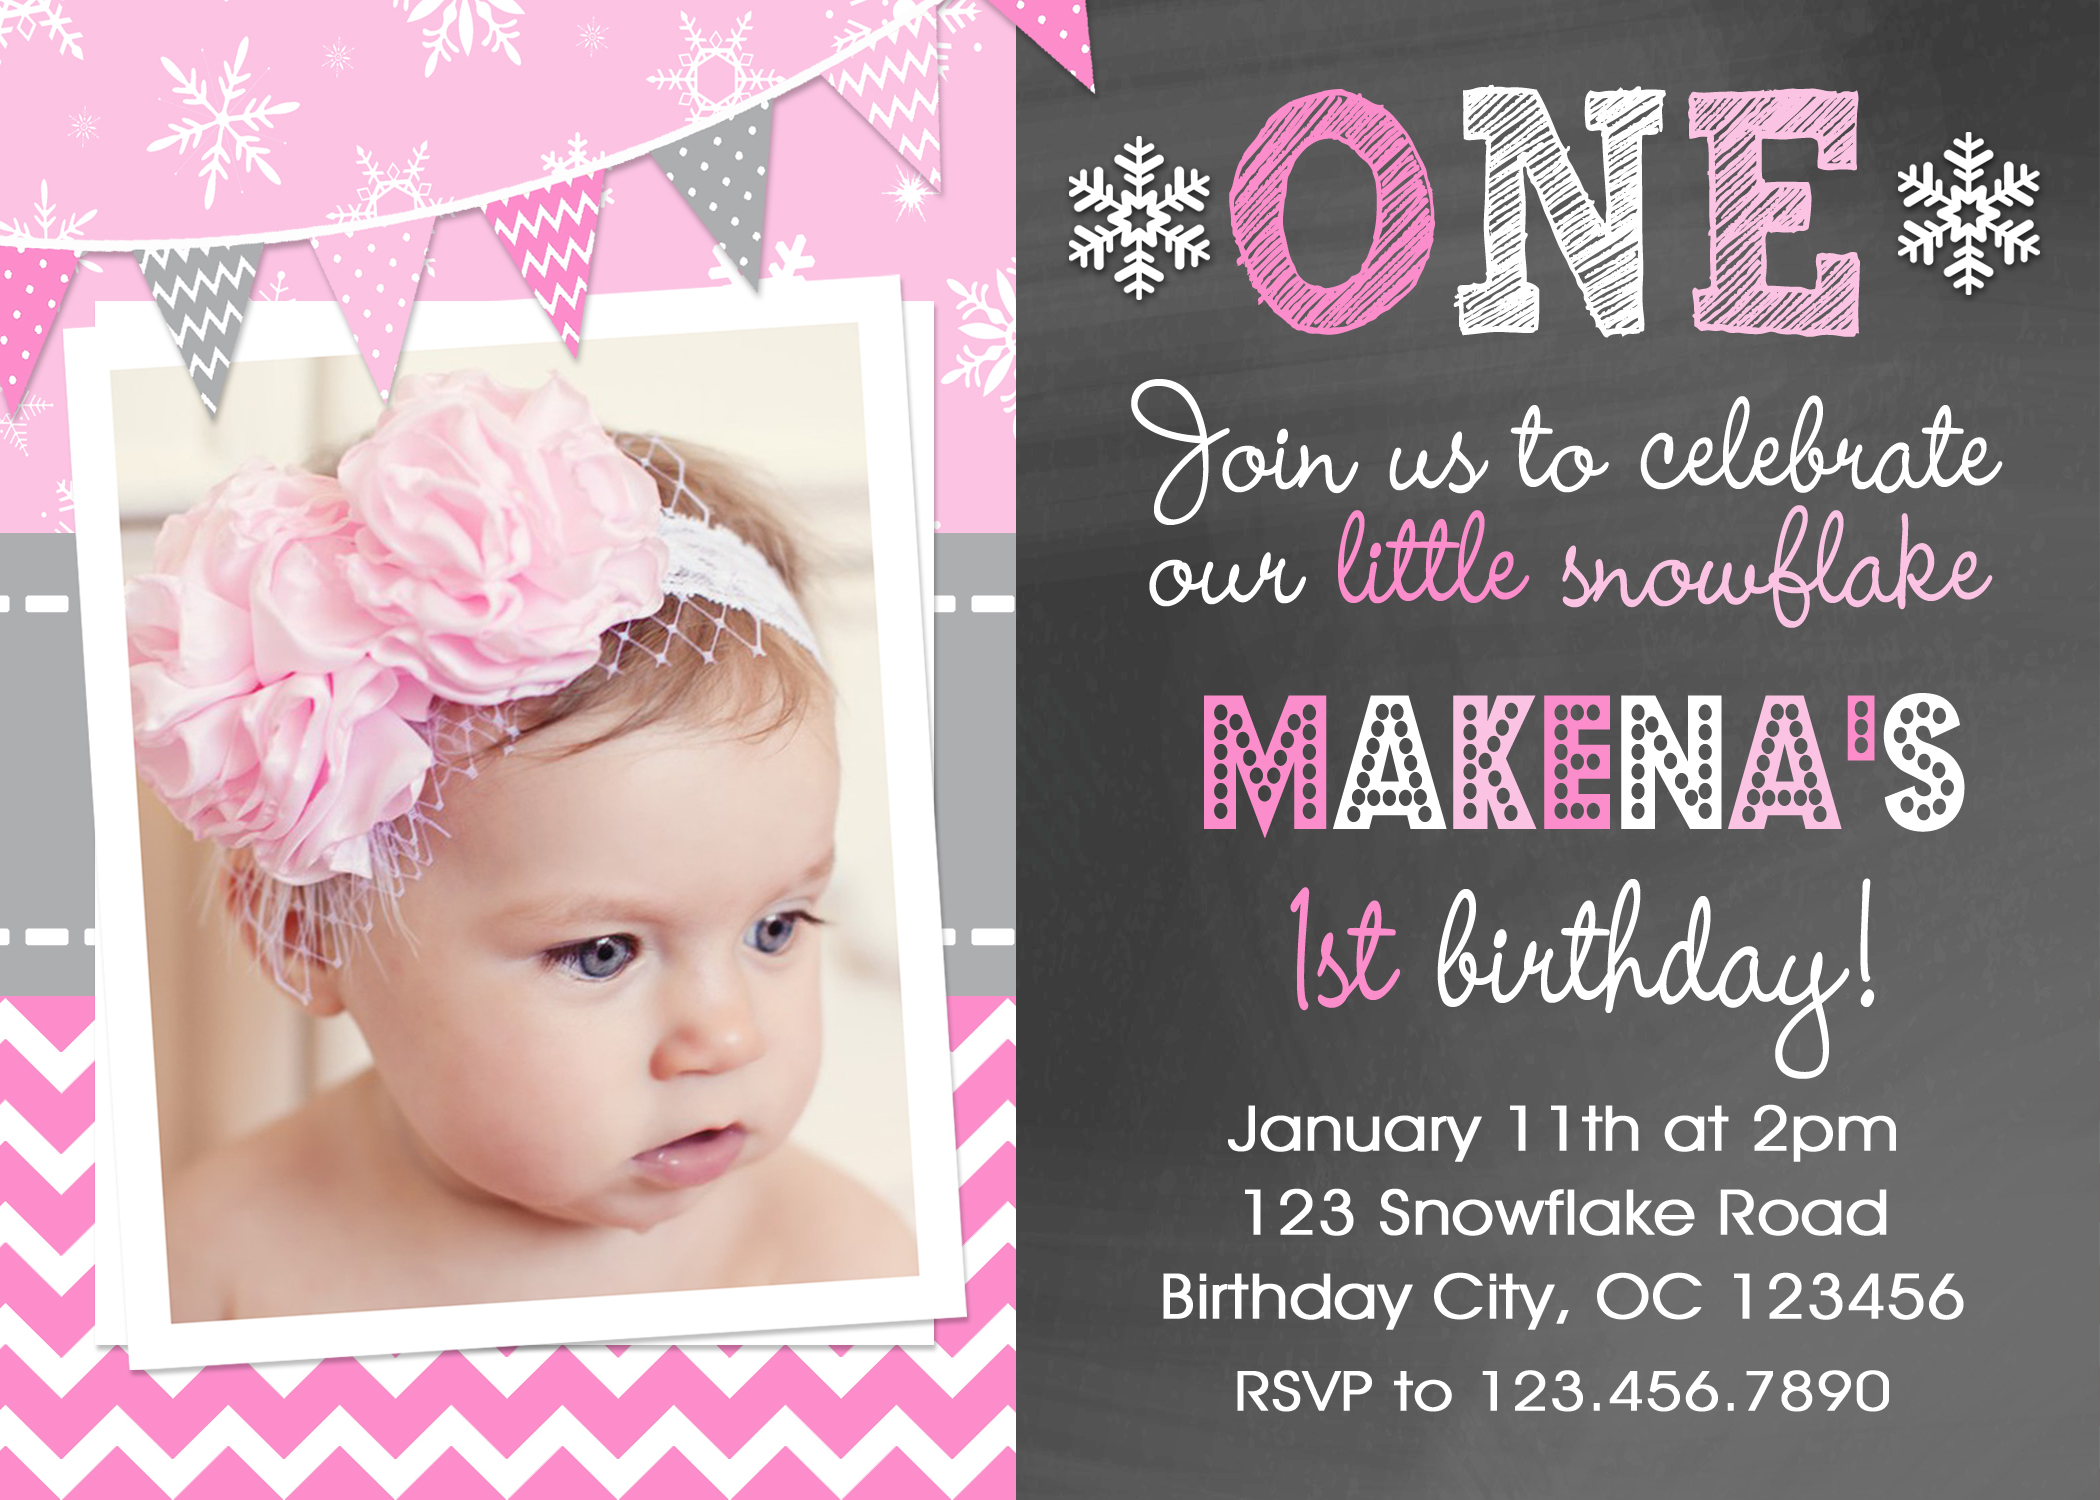 Birthday invitations girl trisaorddiner snowflake printable birthday invitations girls winter snowflake party filmwisefo